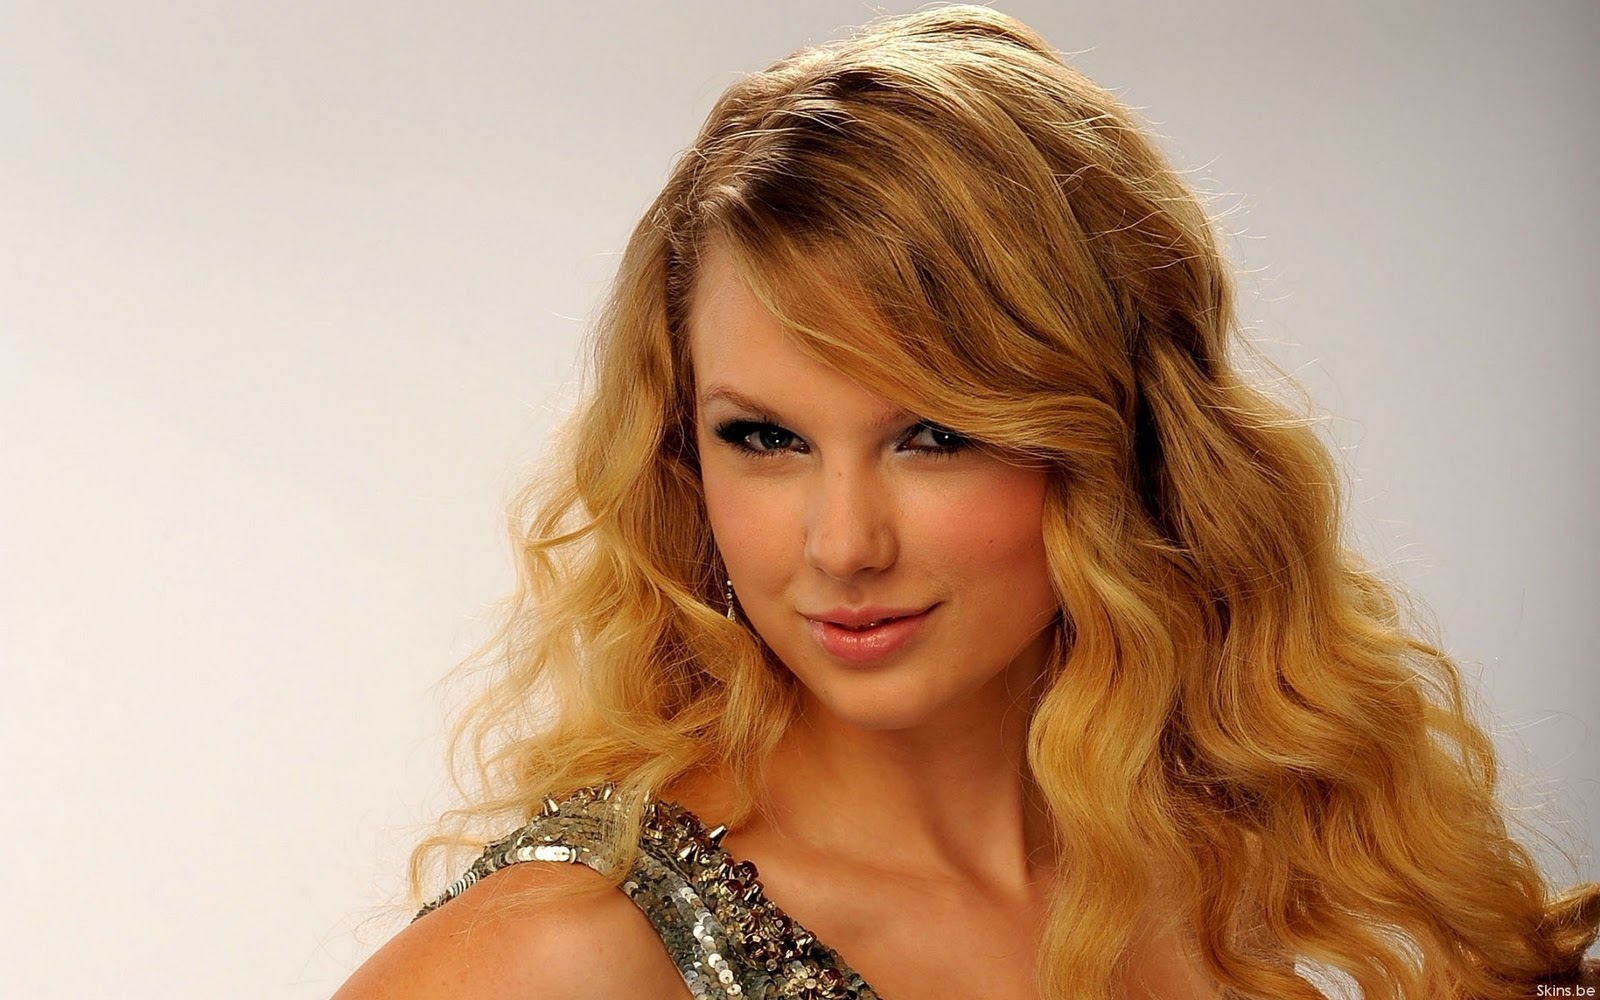 Hollywood Celebrity Taylor Swift Latest HD Wallpapers 2012 Songs 1600x1000